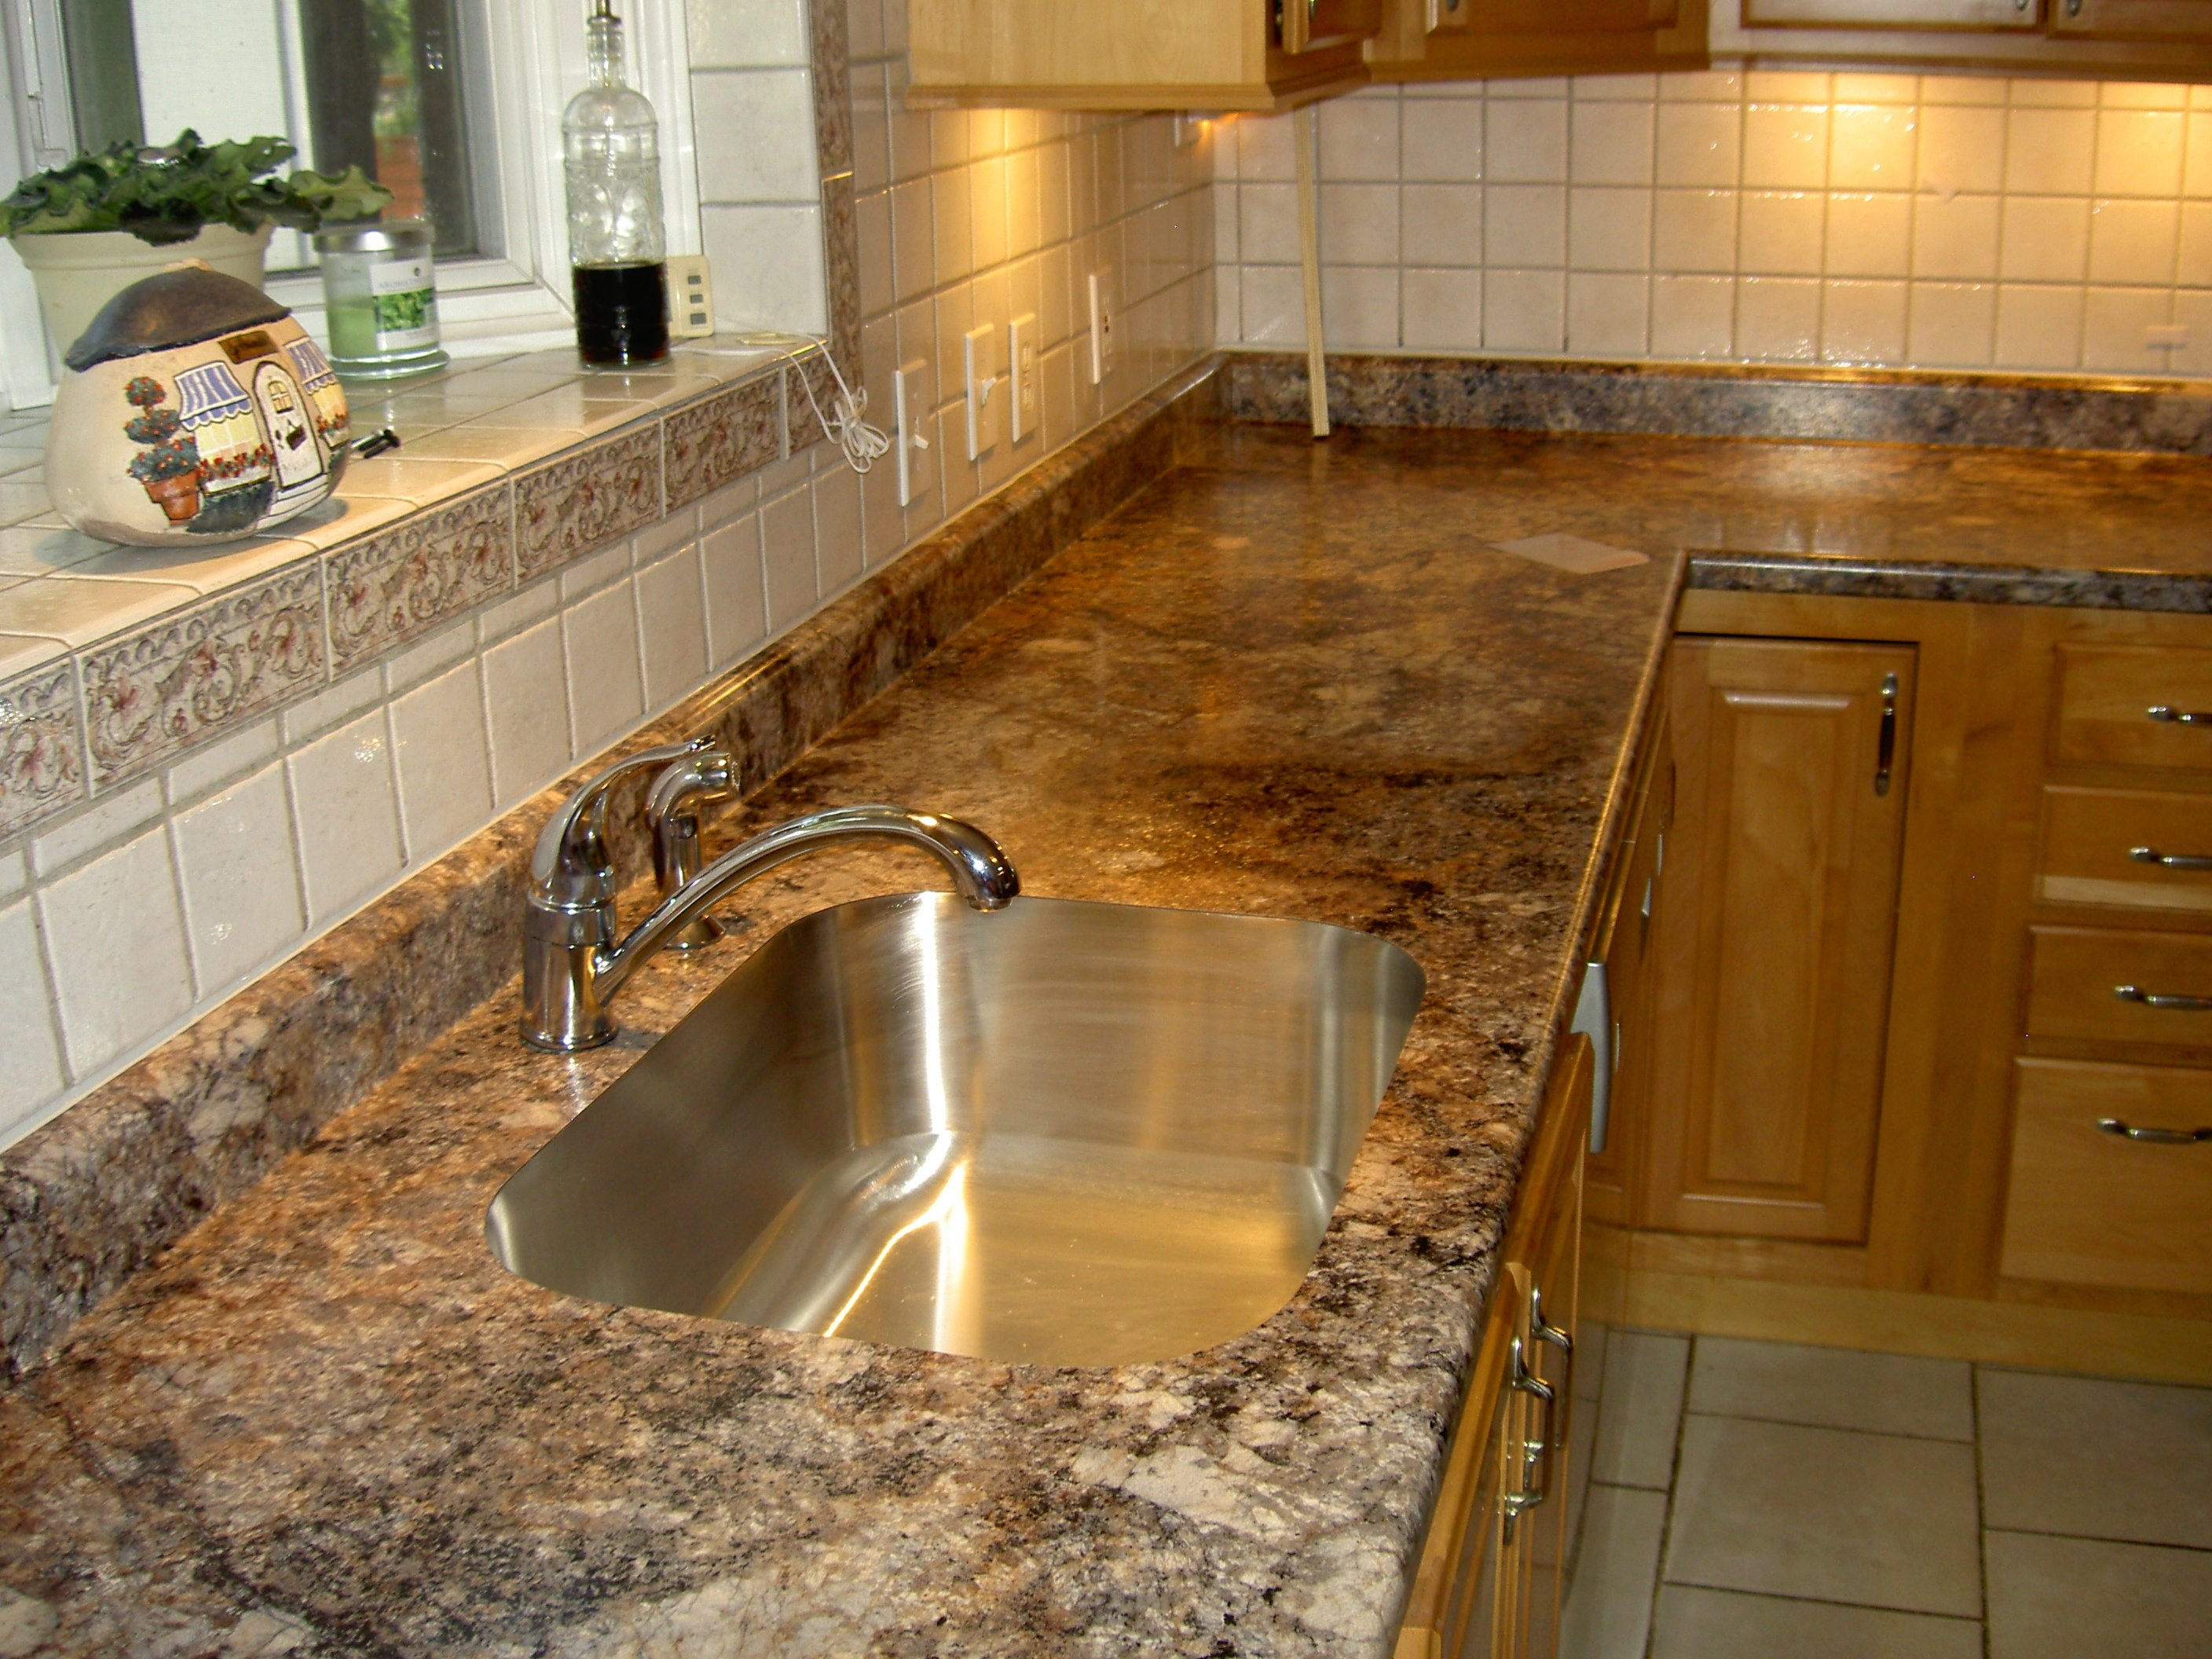 Painting kitchen countertops to look like granite - Best How To Paint Kitchen Countertops To Look Like Granite Abdesicom With Refinishing Formica Countertop